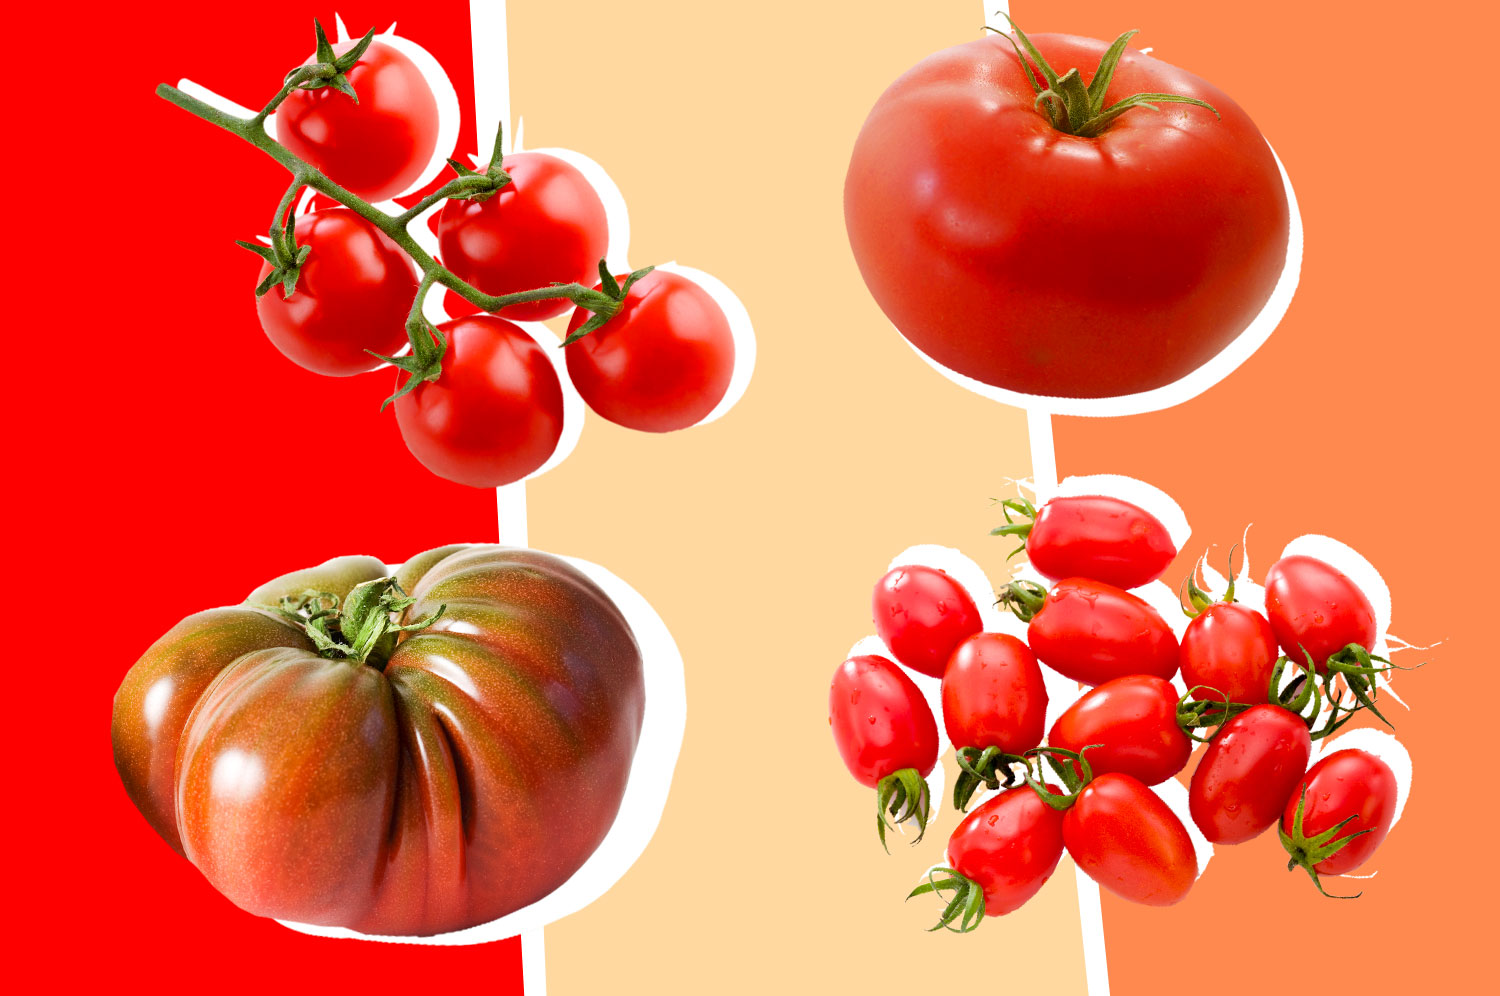 an heirloom tomato, cluster of cherry tomatoes on the vine, a beefsteak tomato, and a dozen plum tomatoes on a red, cream, and peach background